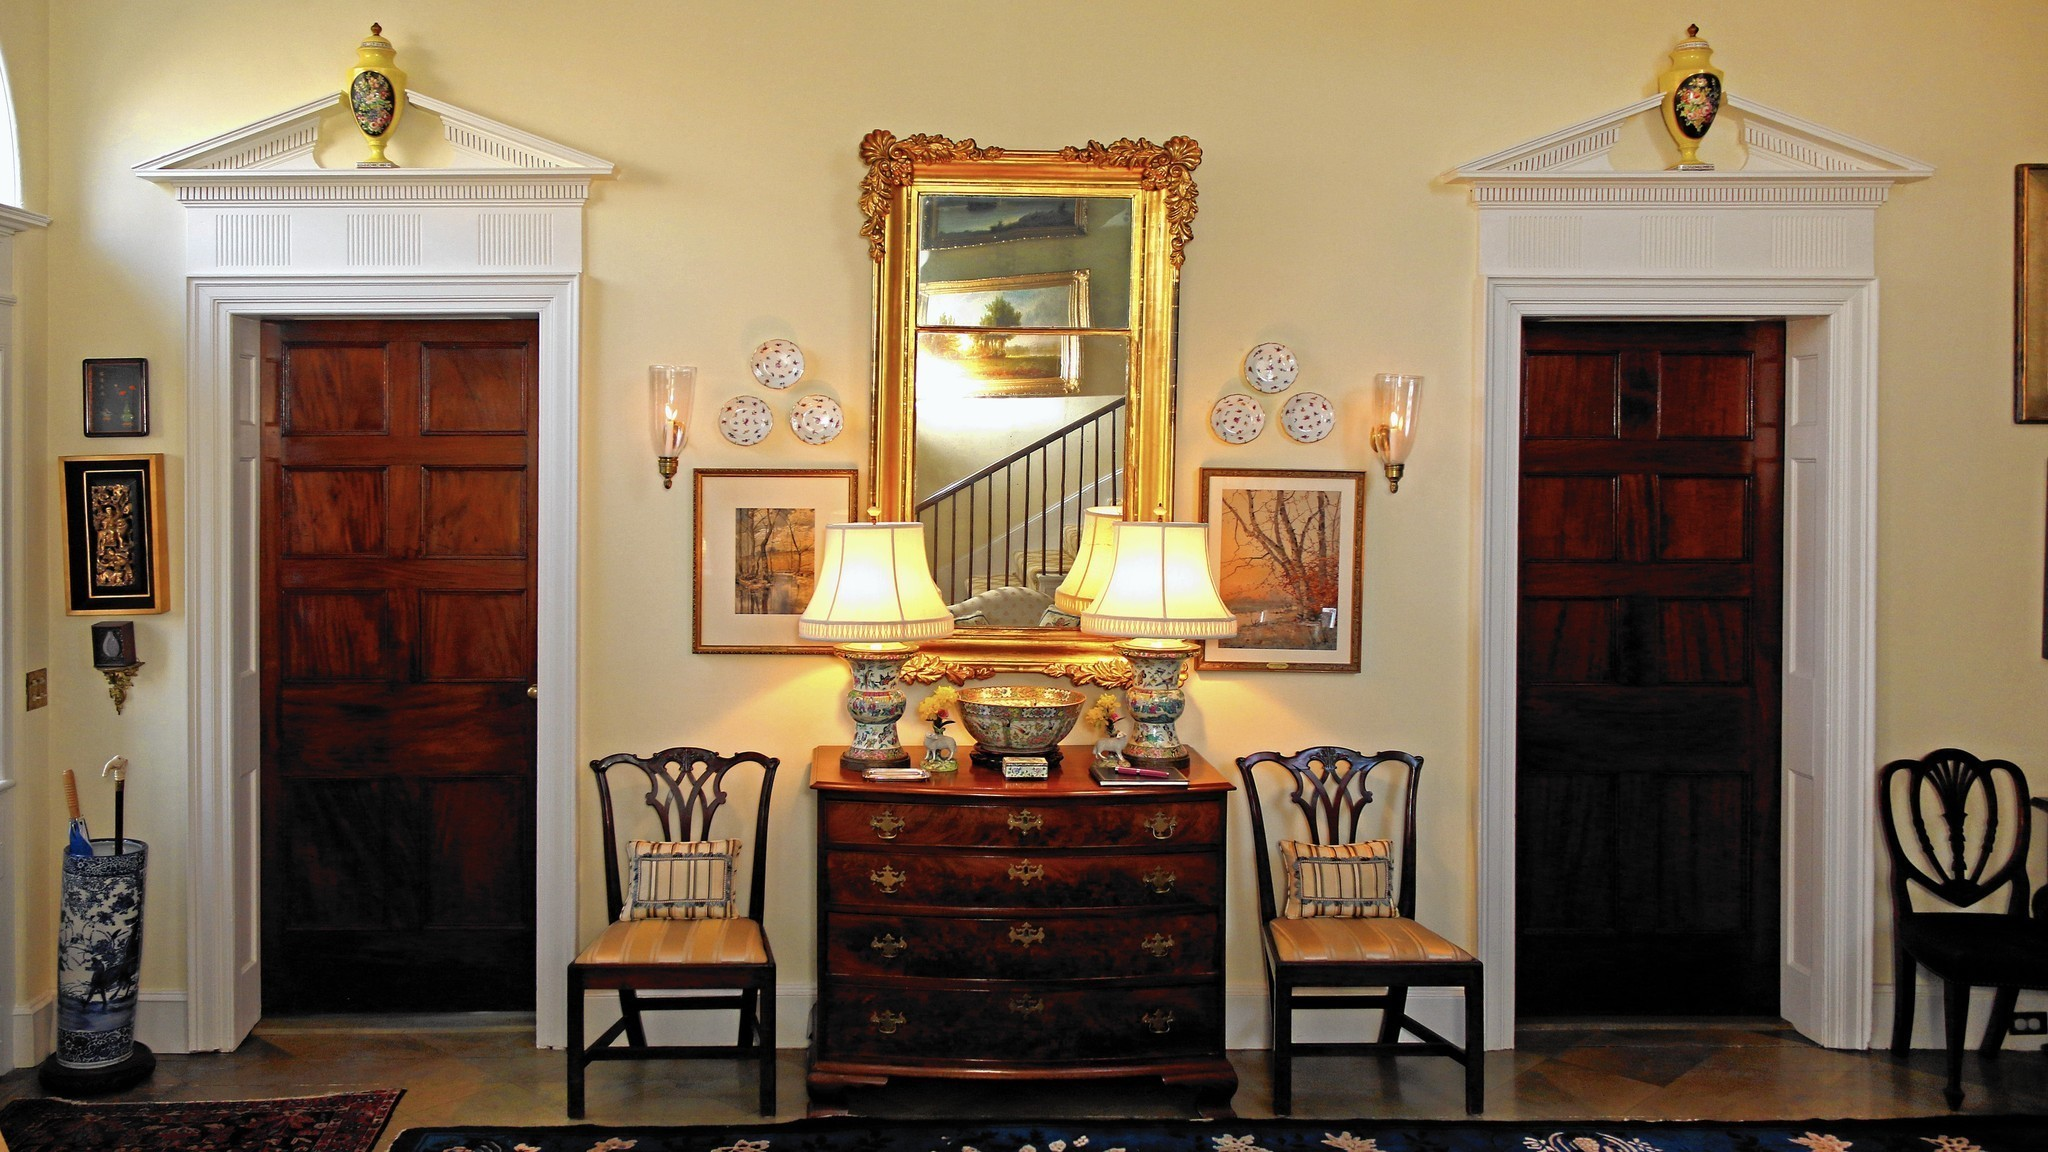 Make the foyer a warm welcome to your home   hartford courant